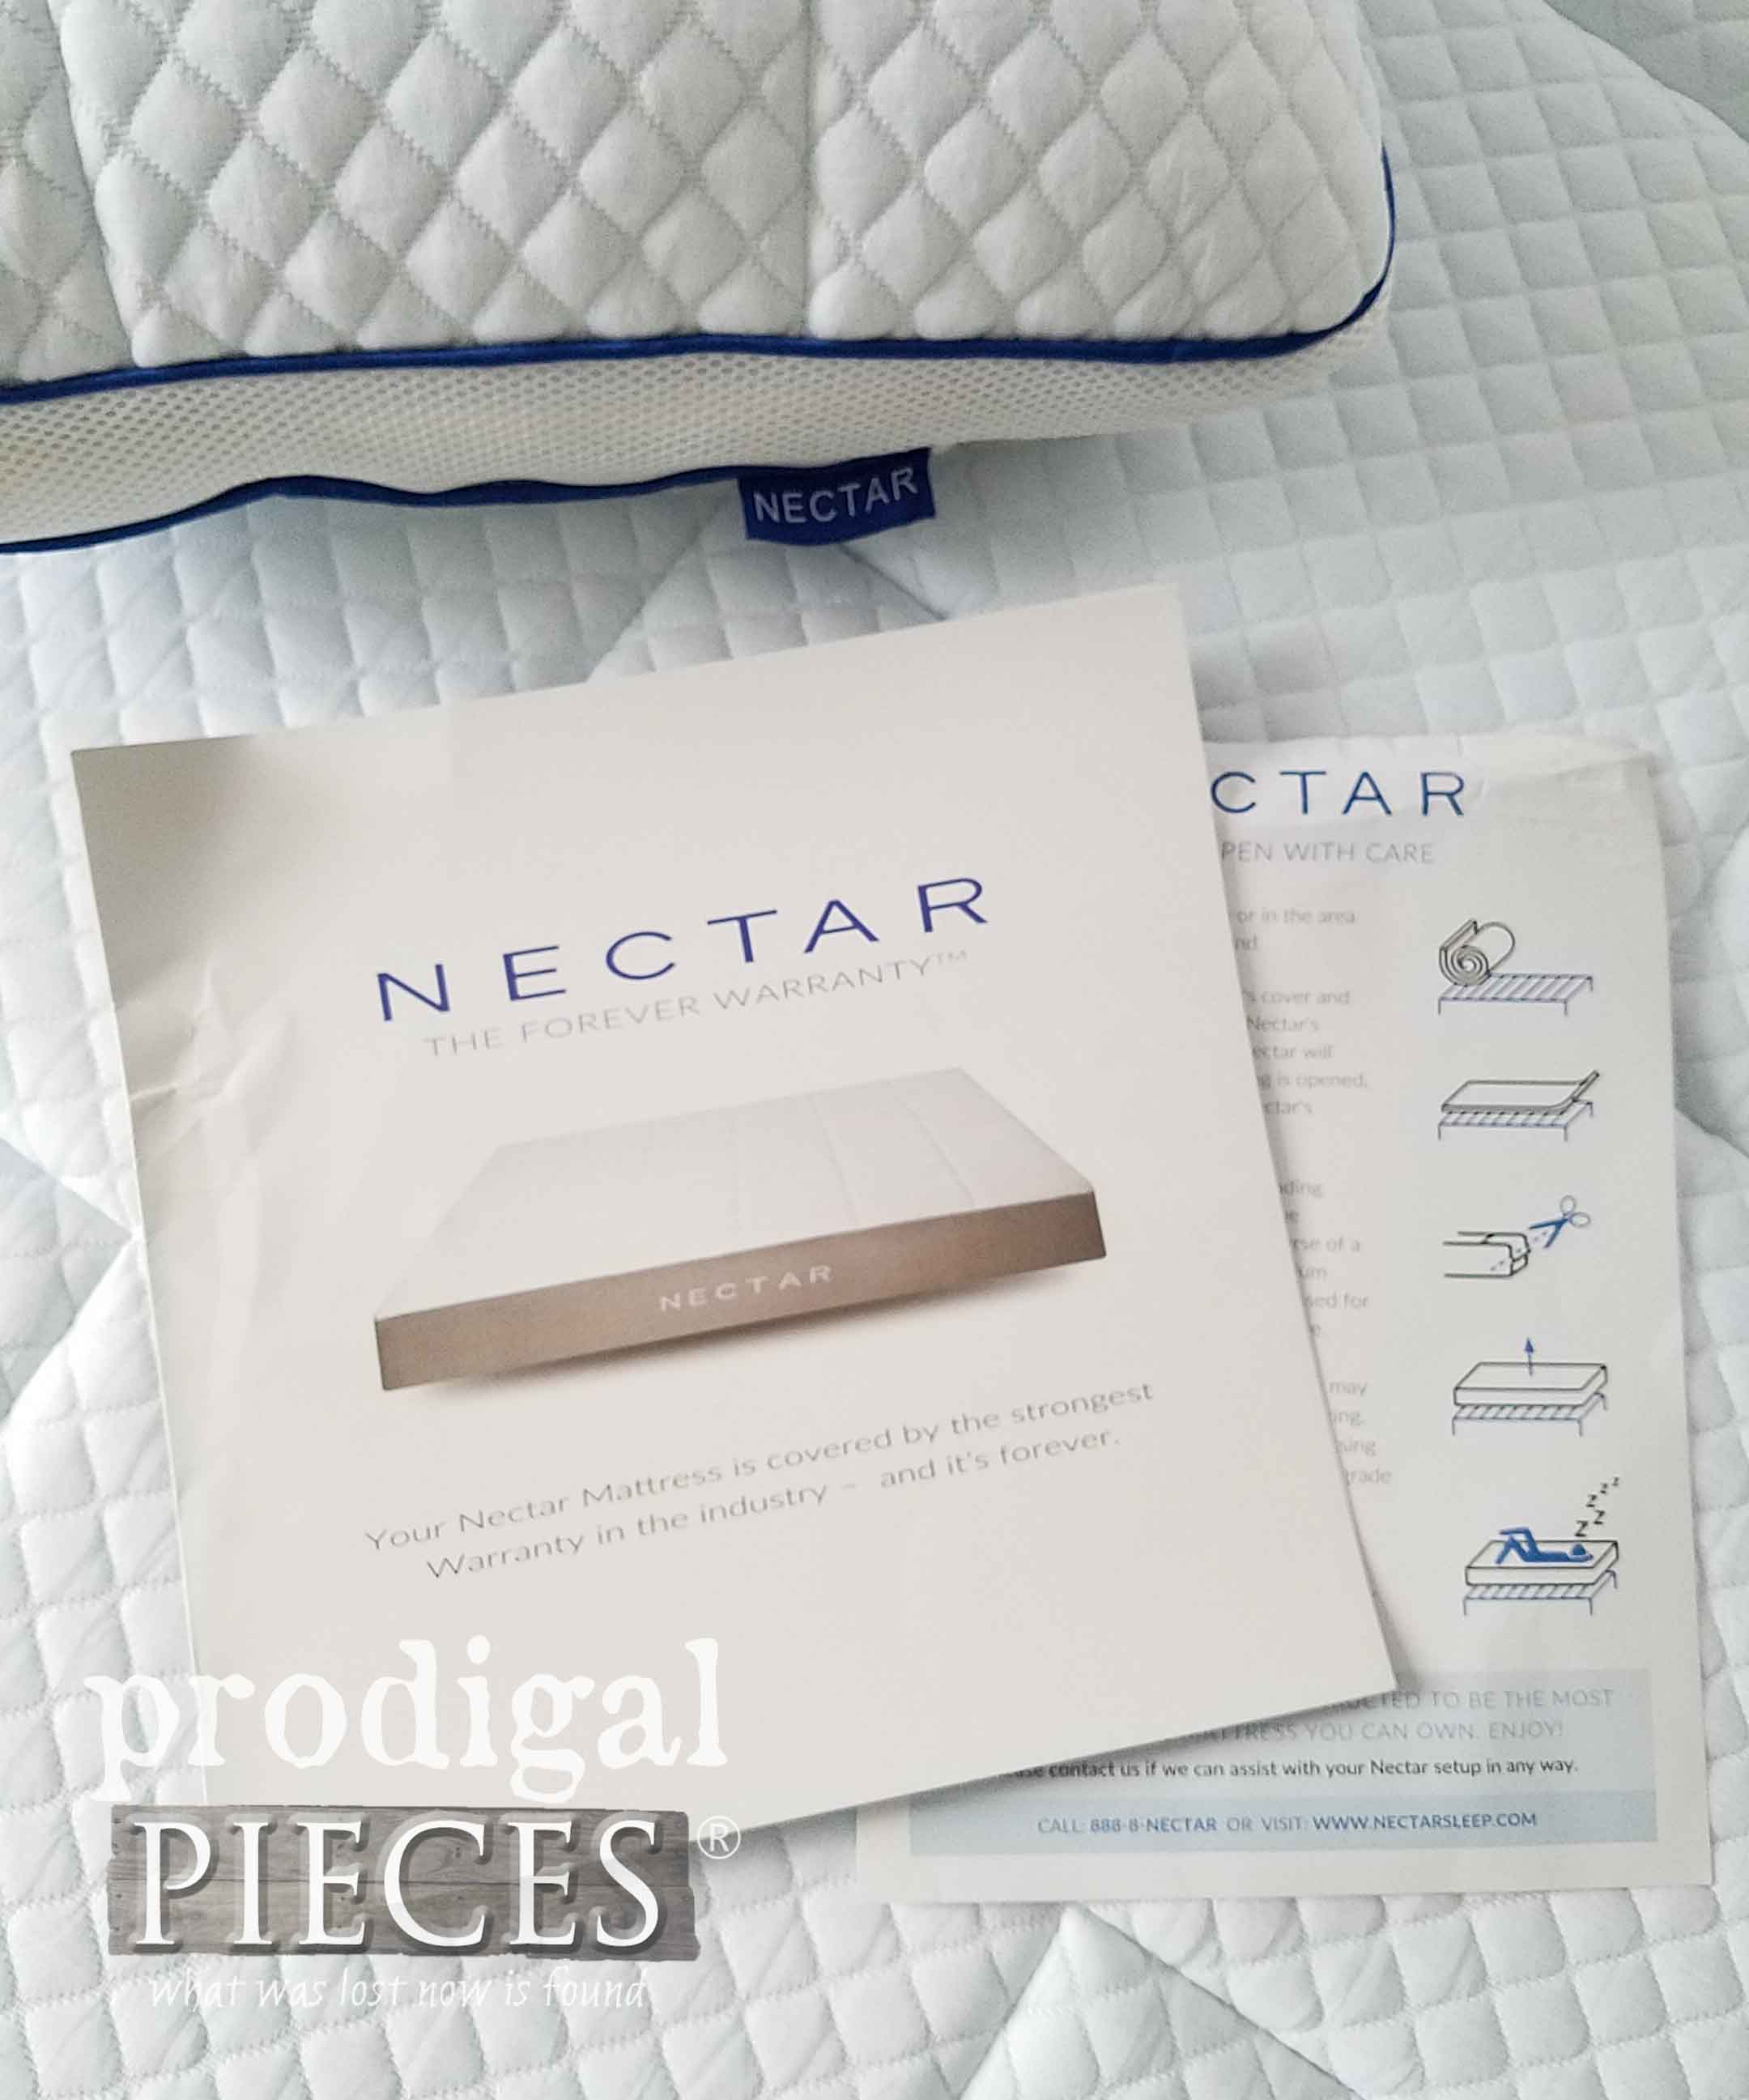 Memory Foam NECTAR mattress review by Prodigal Pieces | prodigalpieces.com